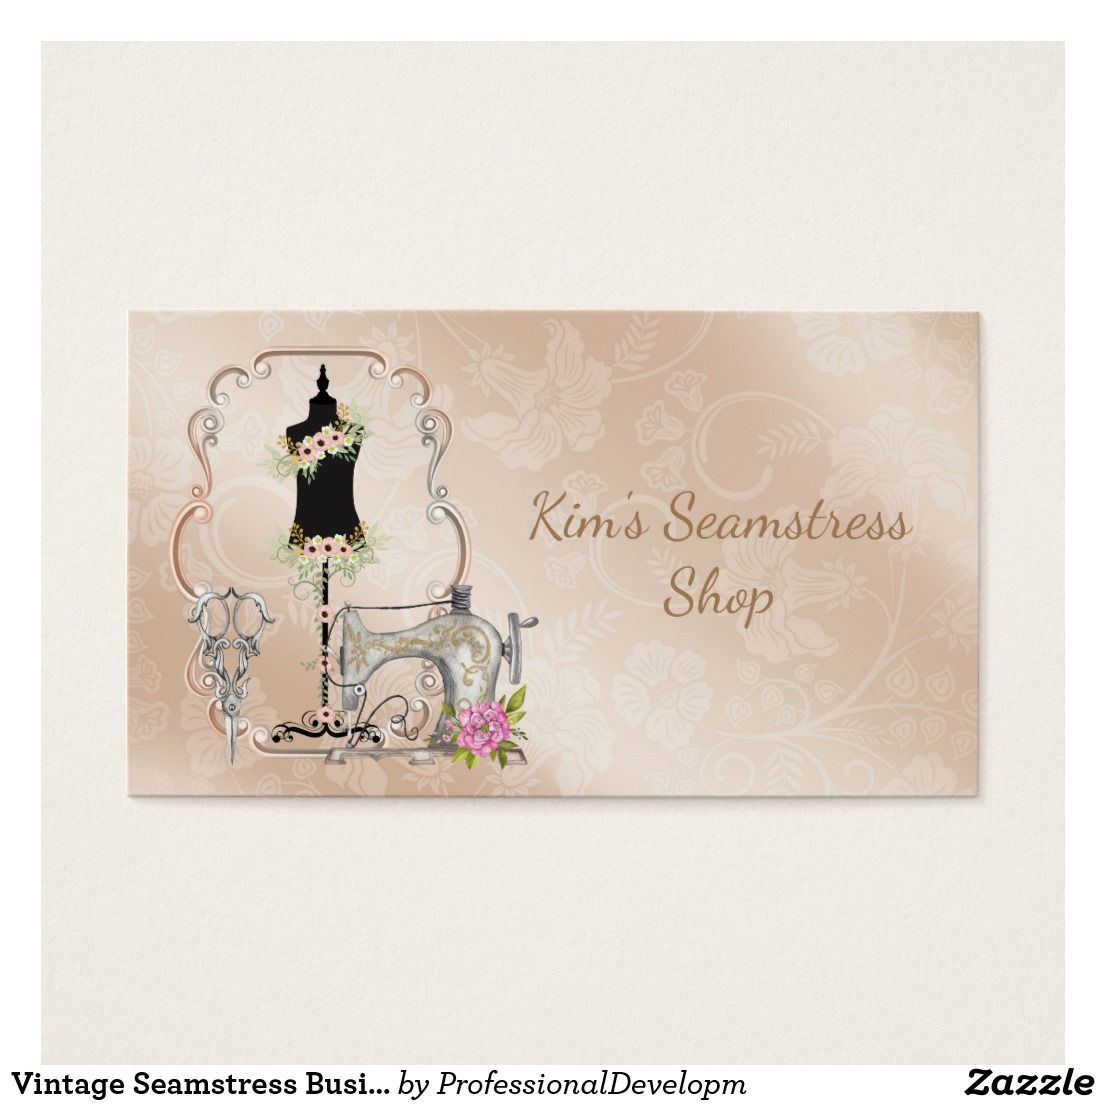 Vintage Seamstress Business Card | Business cards and Business